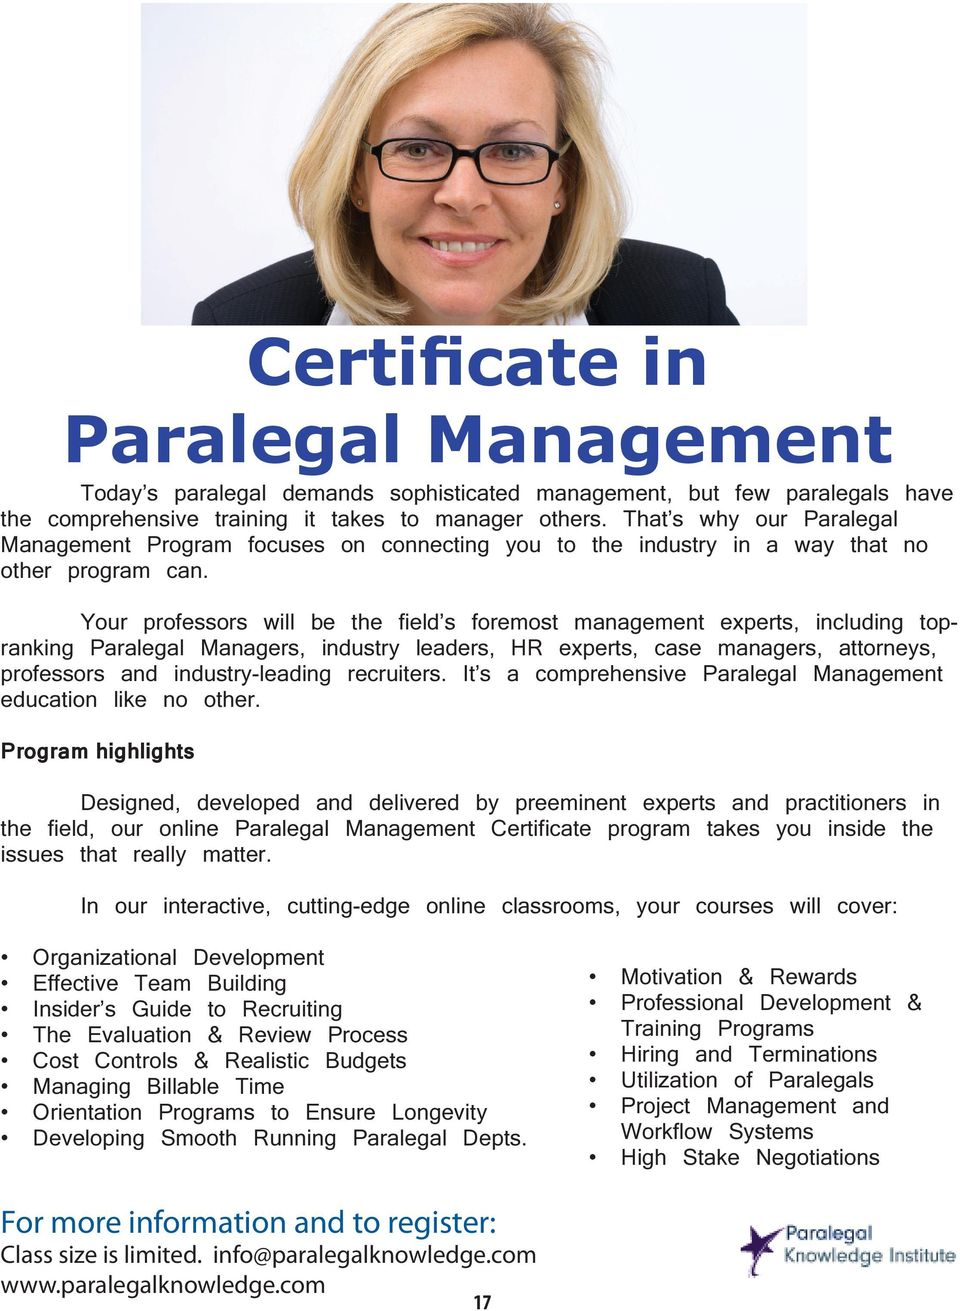 Your professors will be the field s foremost management experts, including topranking Paralegal Managers, industry leaders, HR experts, case managers, attorneys, professors and industry-leading